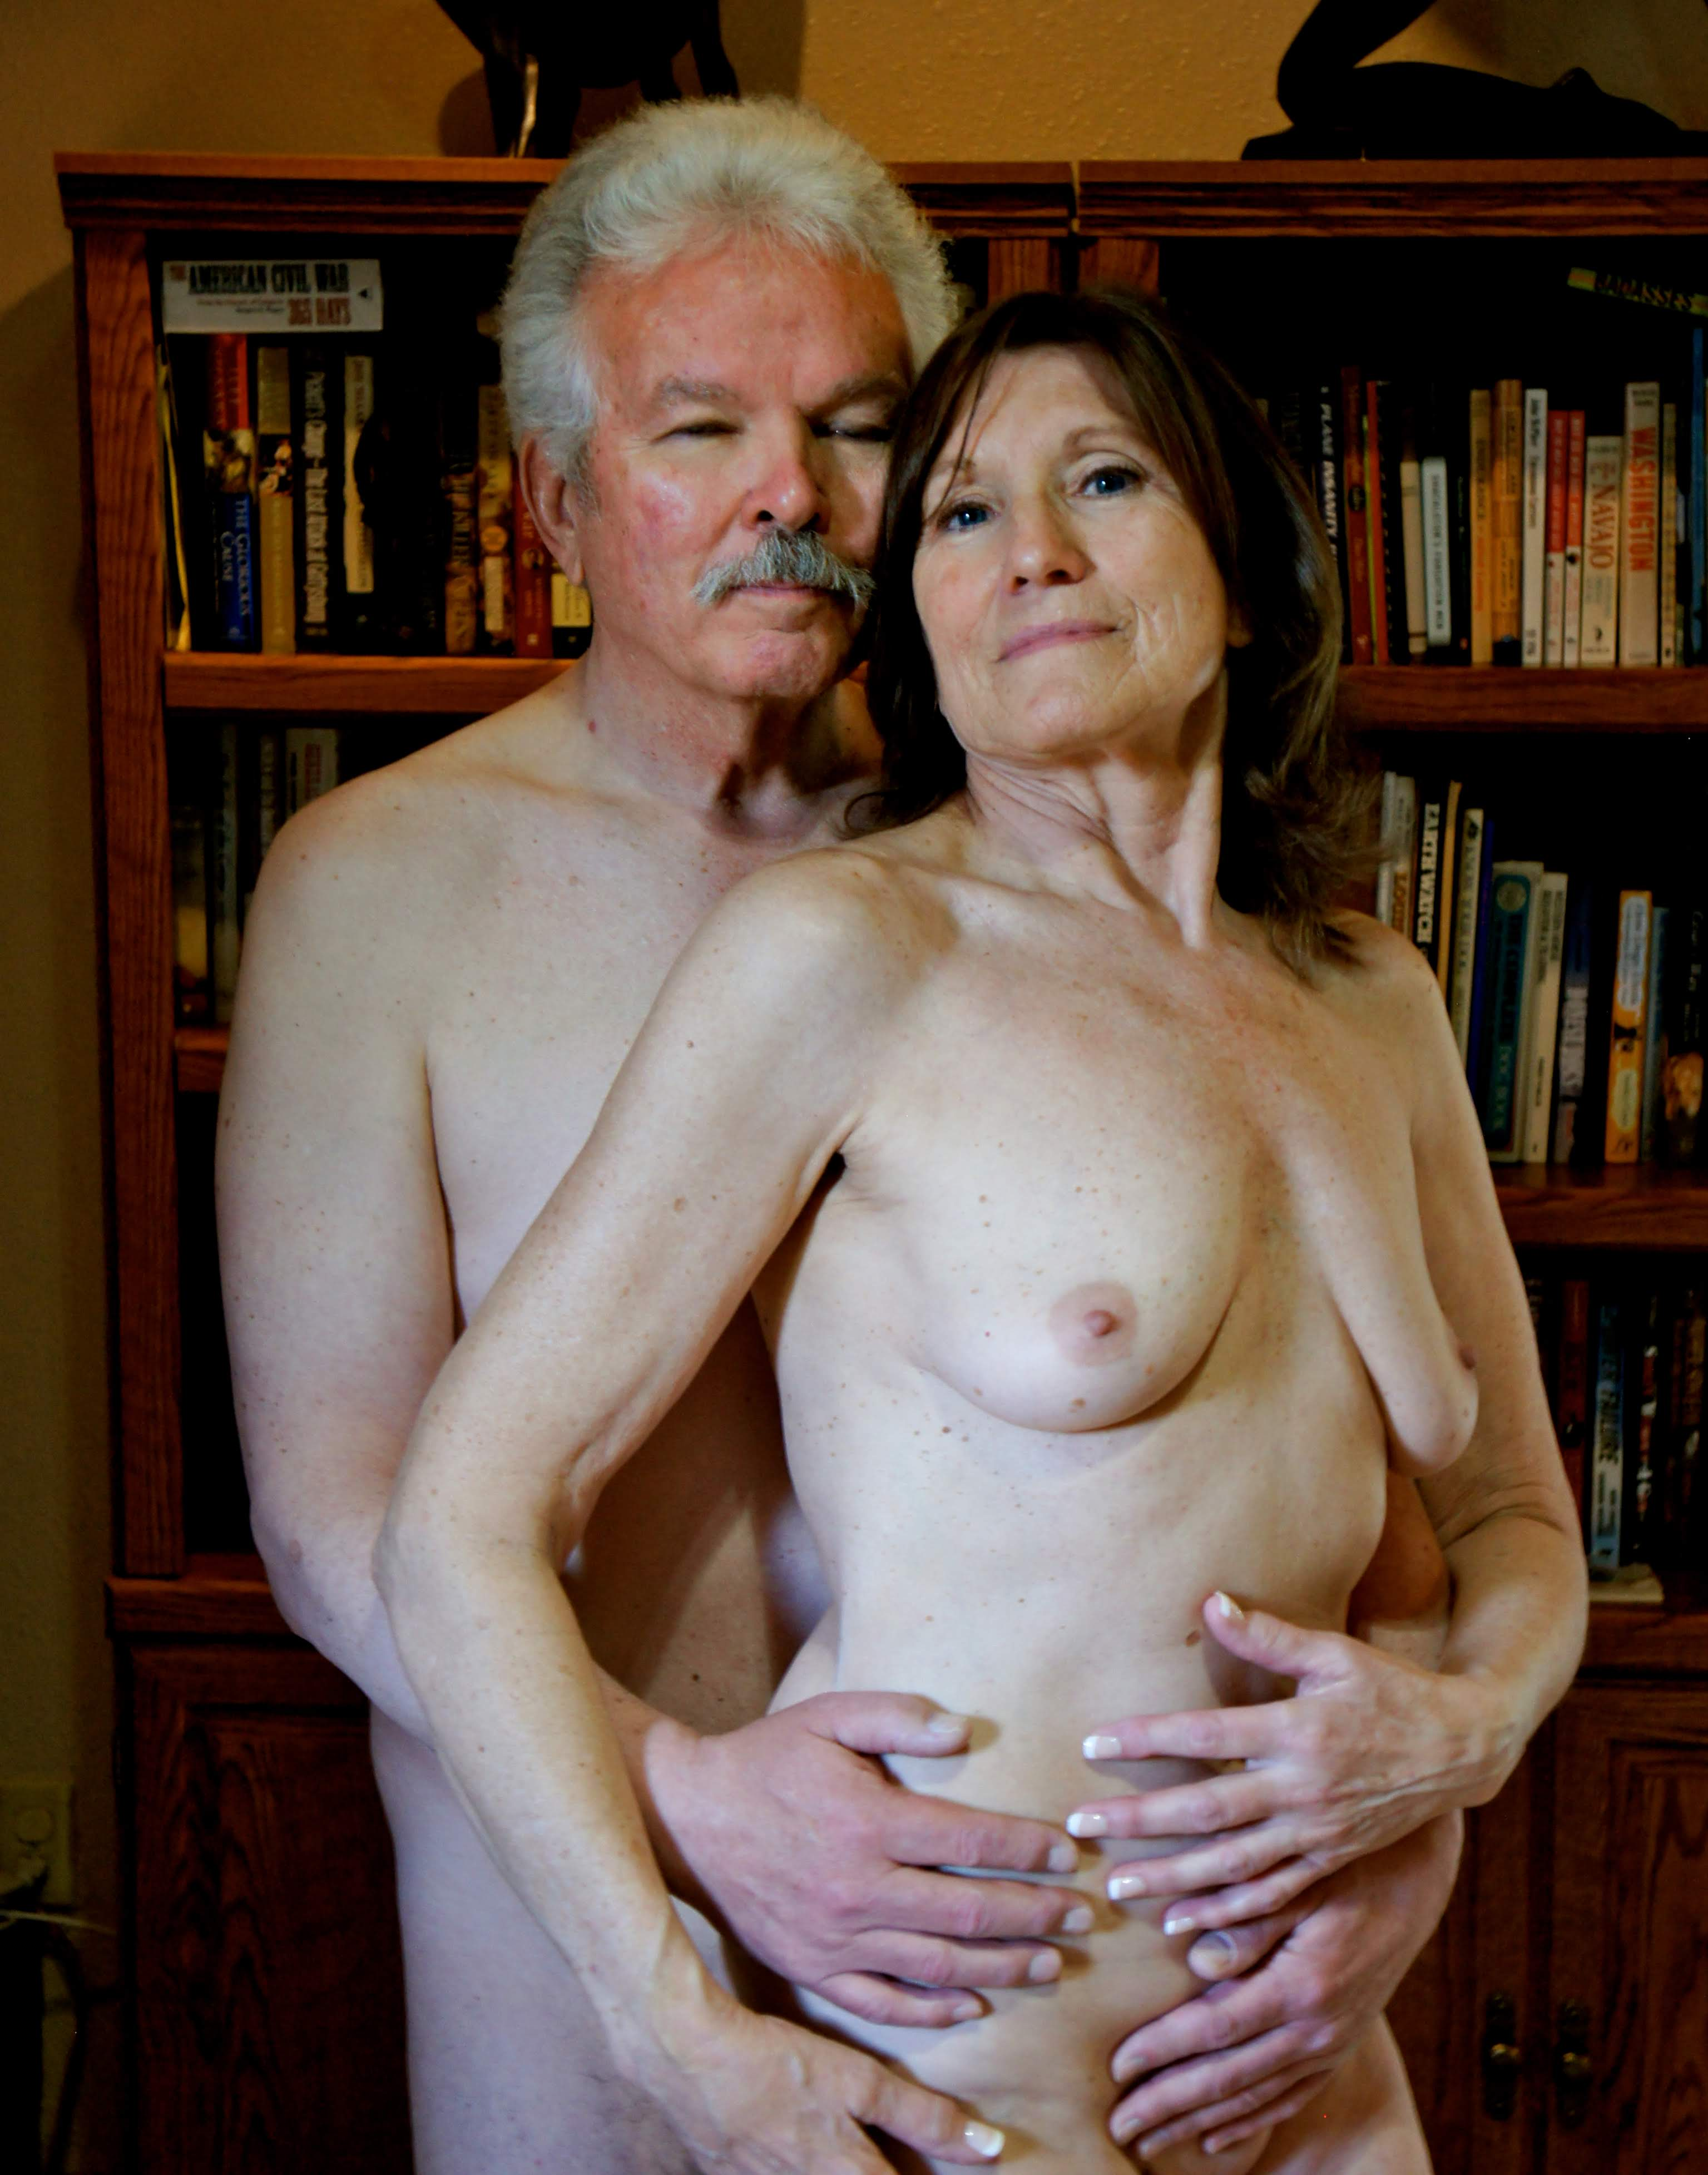 Nude older couple embrace